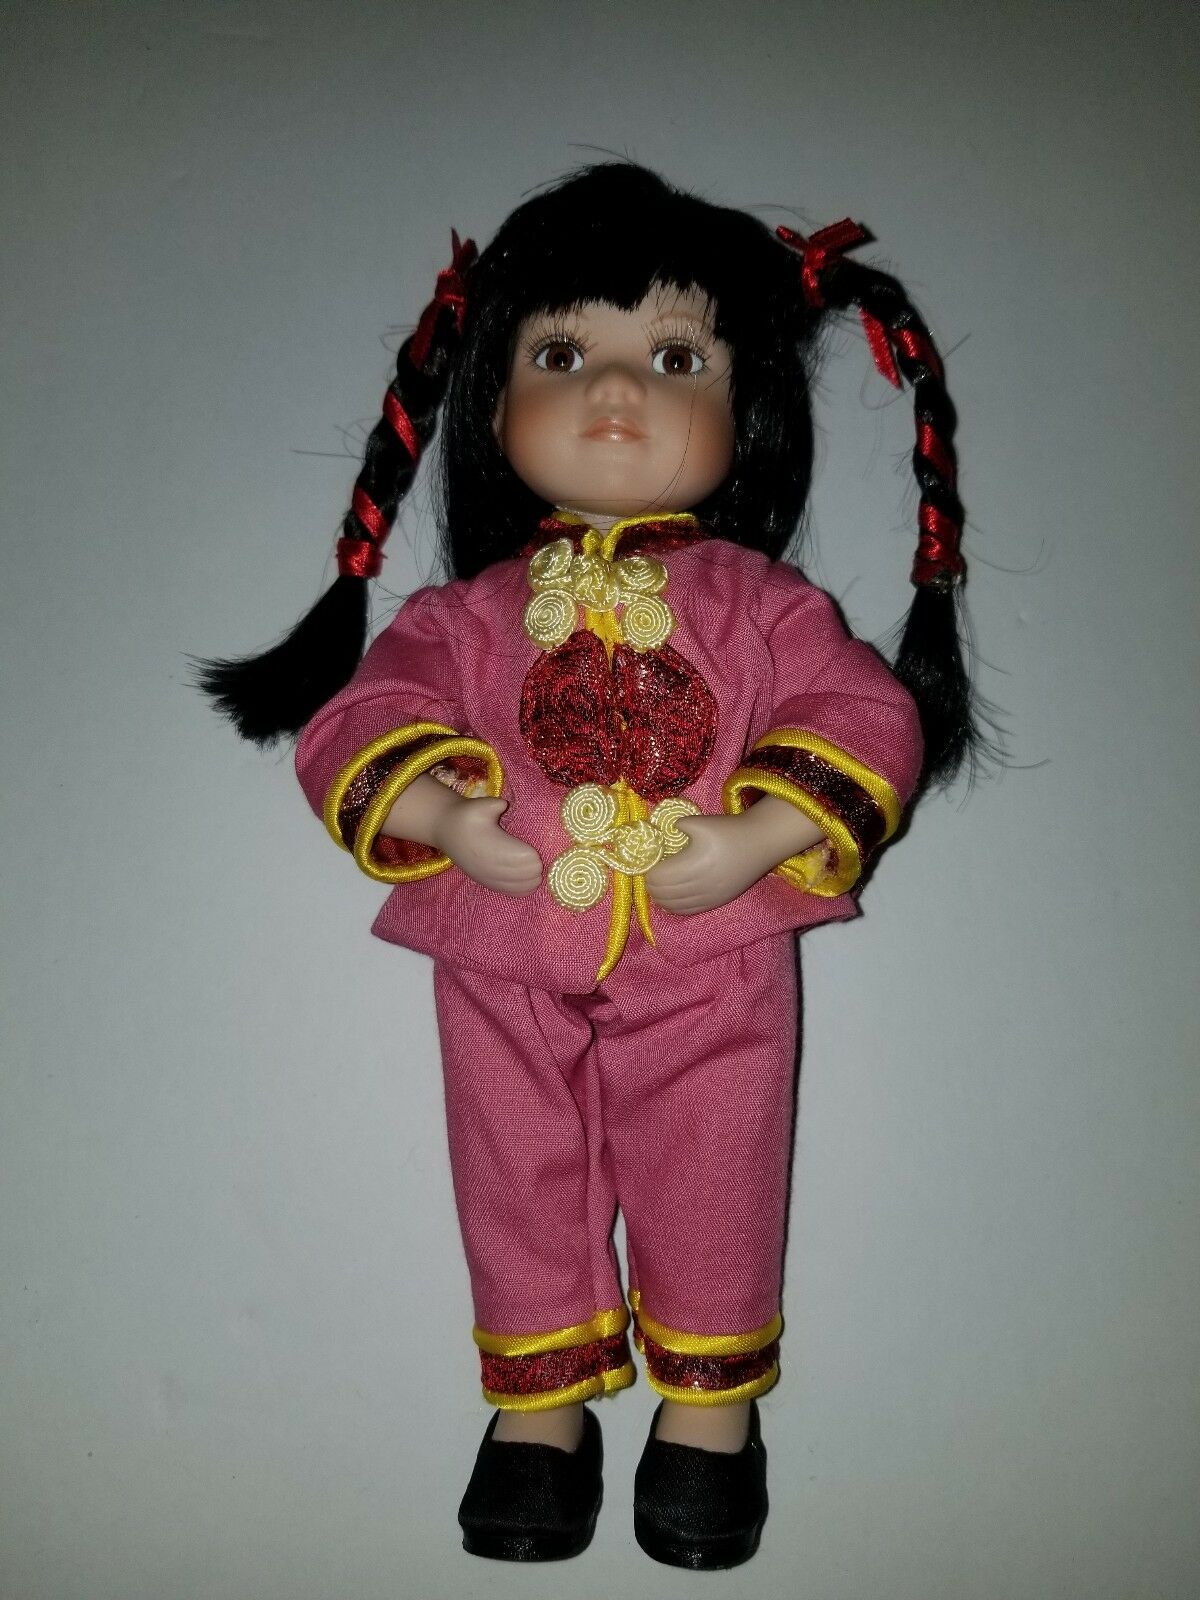 GEPPEDDO  COLLECTORS Series Porcelain bambola  LING LING..RARE   In great Condition  100% nuovo di zecca con qualità originale